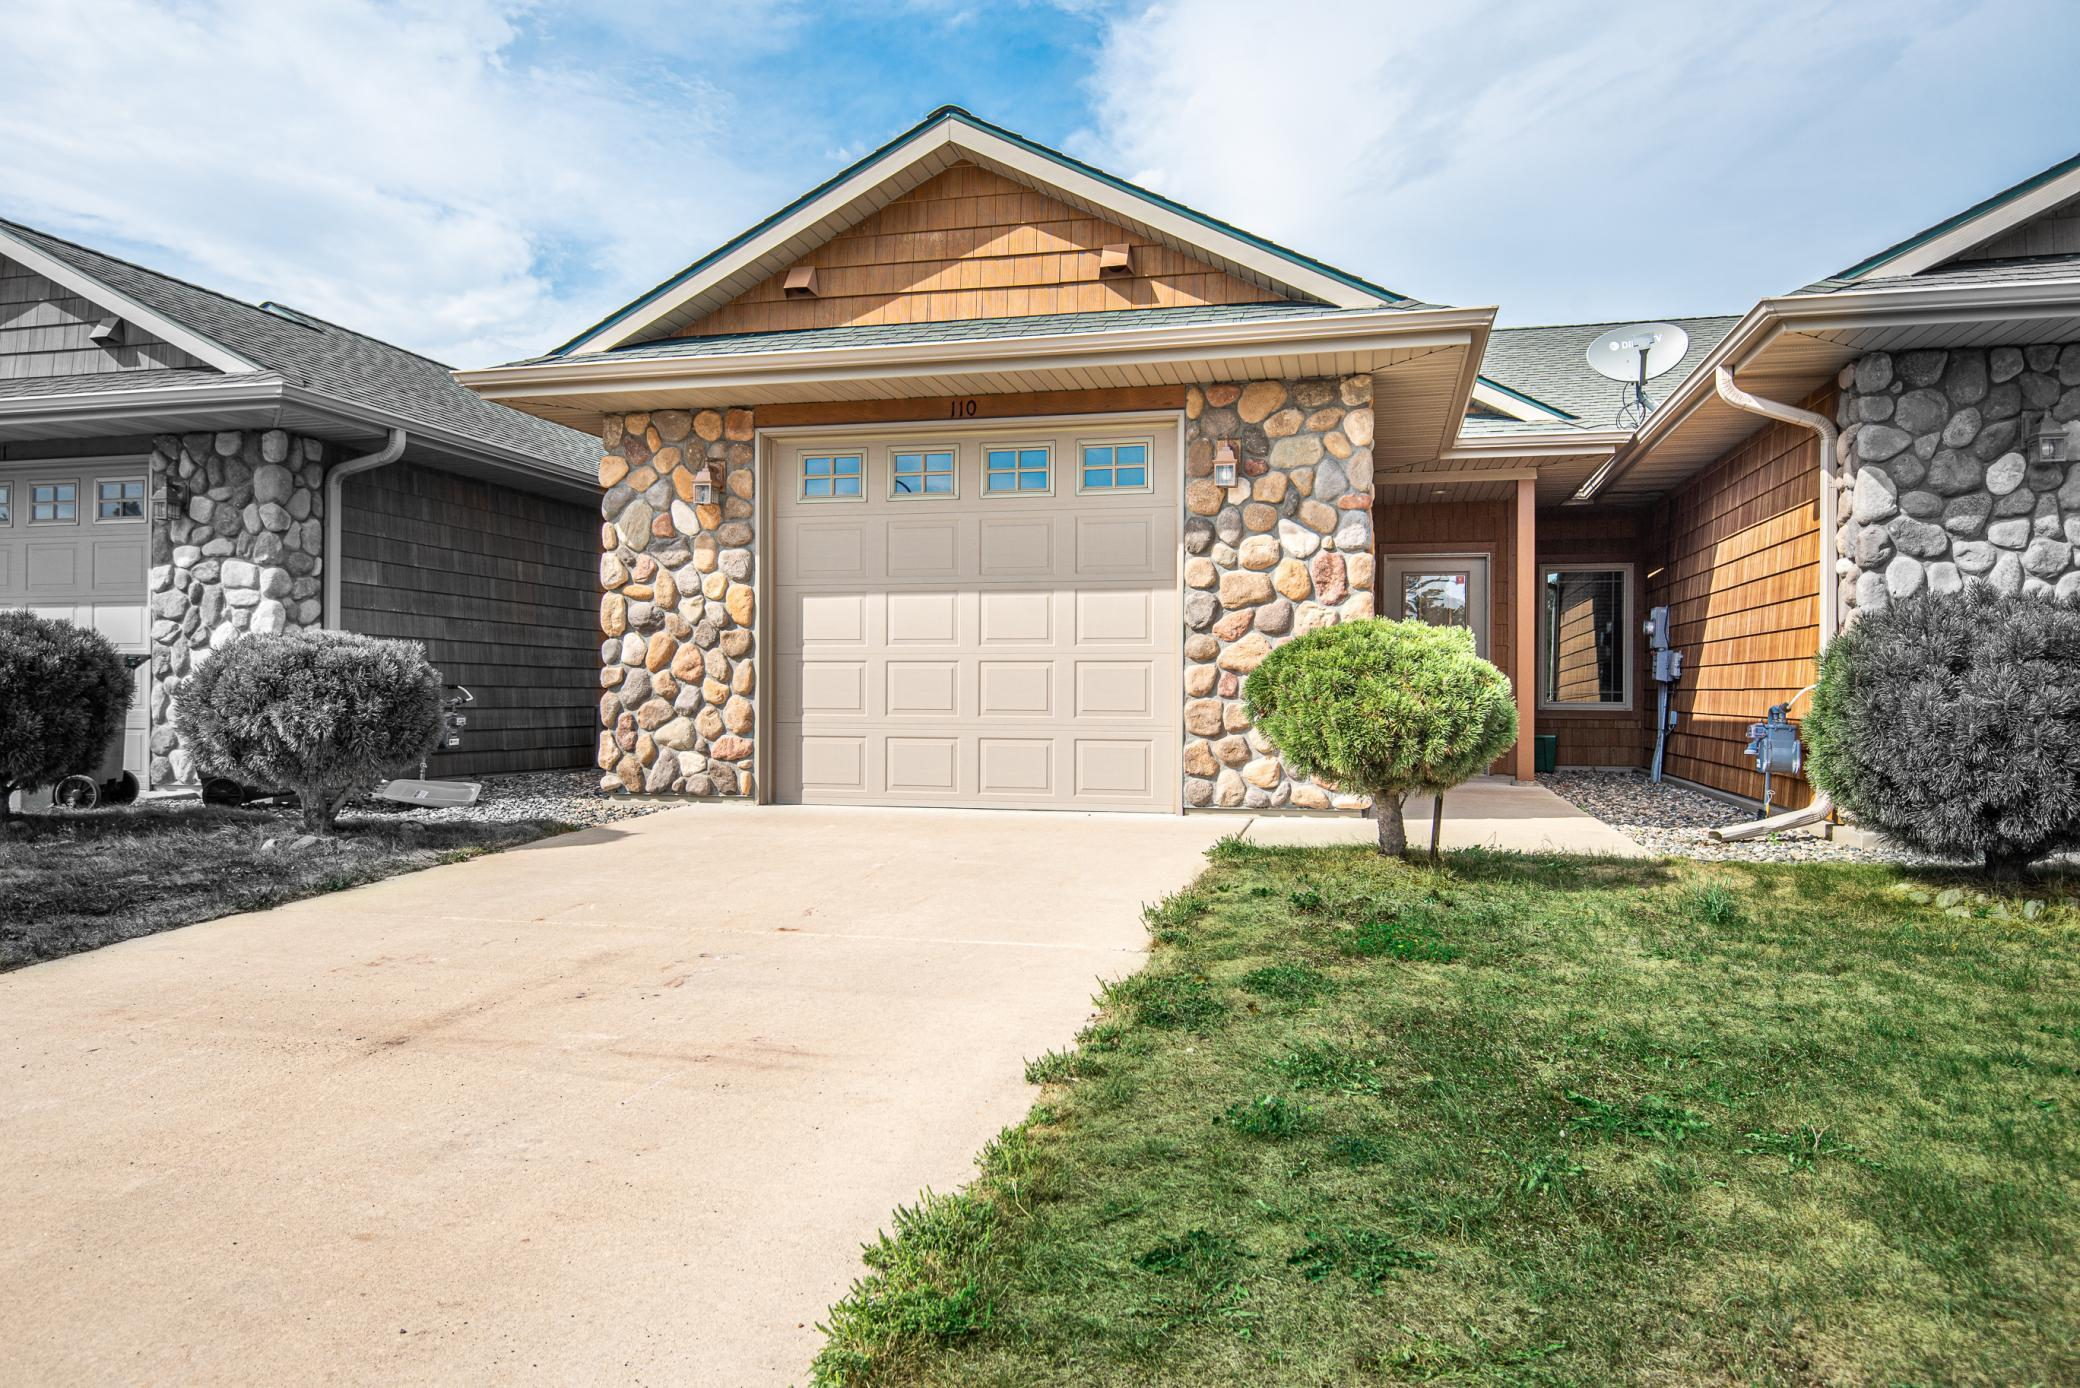 Looking for an easy-care, one-level property? Look no further!  This hard to find 2BR/2BA townhome is ready to go with vaulted ceilings, gas fireplace, 3/4 master bath, and attached heated garage with storage above. Patio w/privacy fencing, central air and additional parking area available for guests.